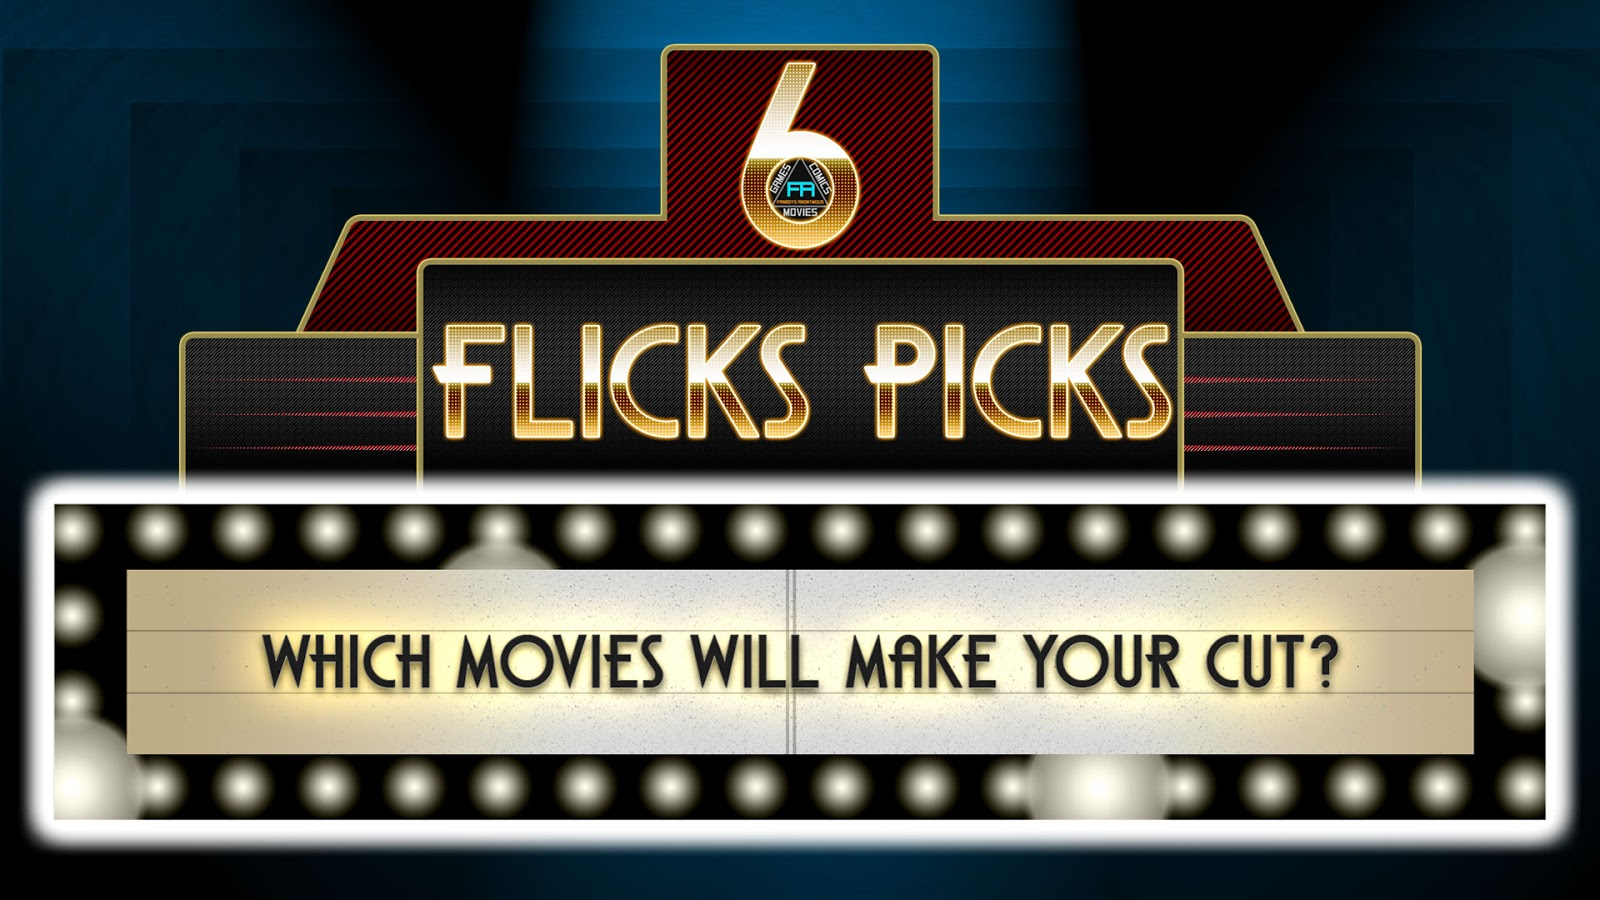 What movies are coming out August 2018 6 Flicks Picks